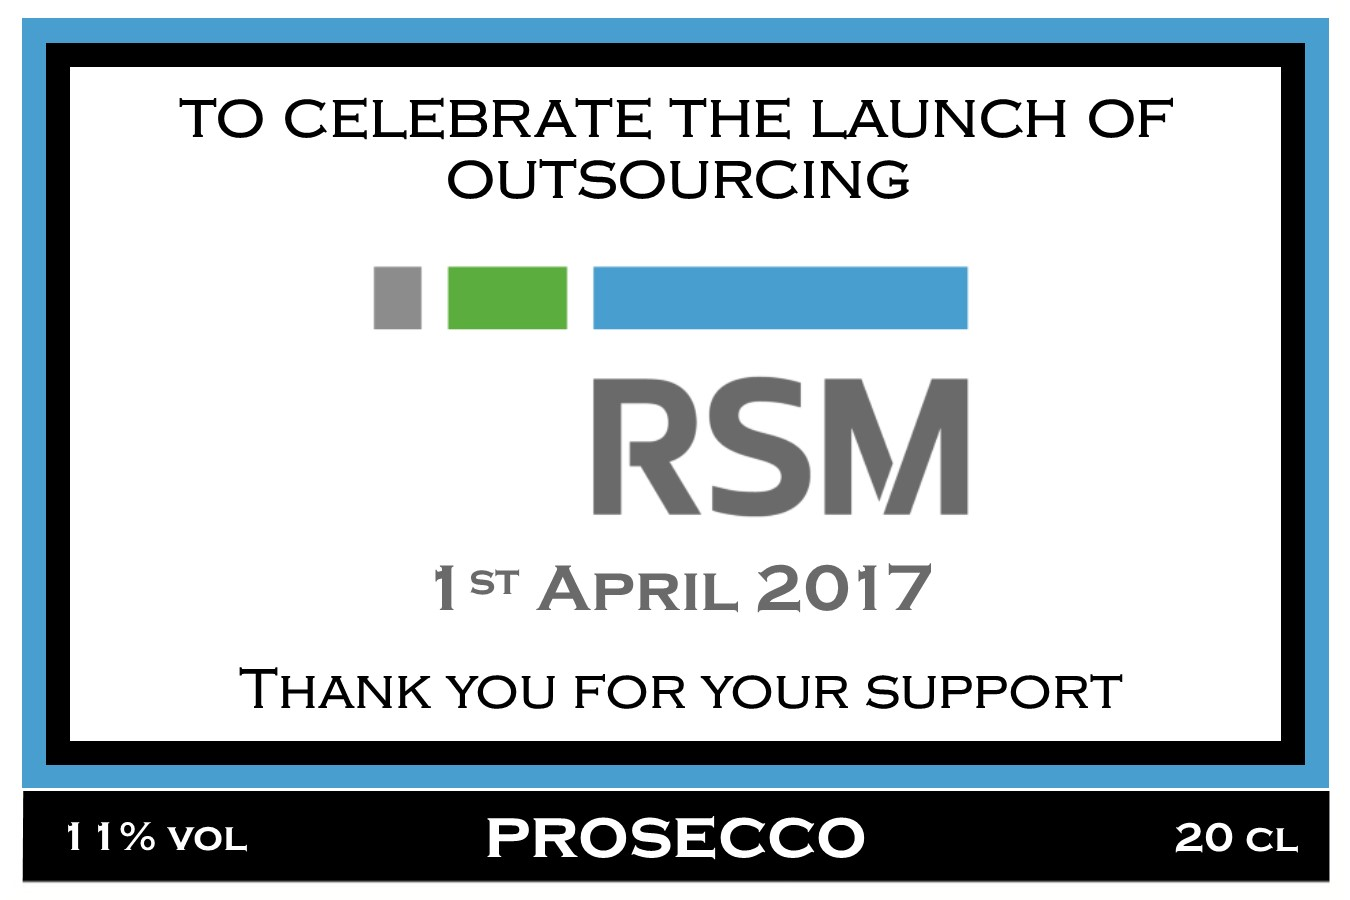 RSM Launch Prosecco Label